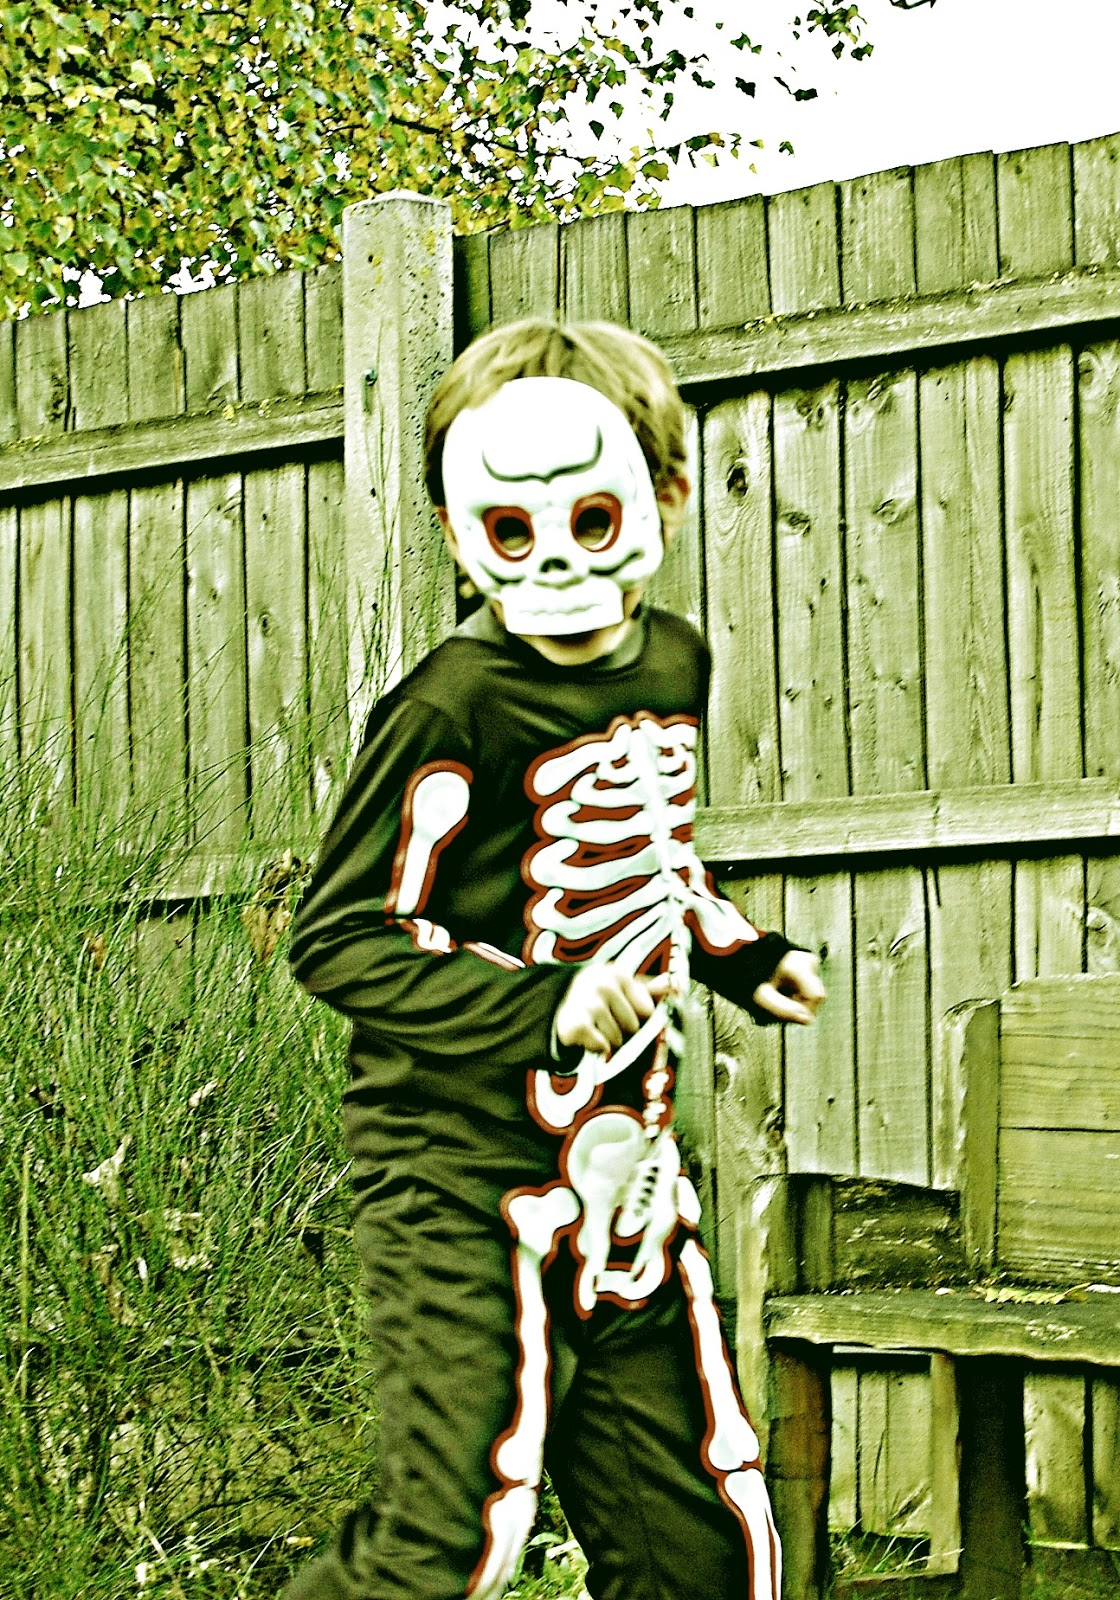 Asda Skeleton Costume